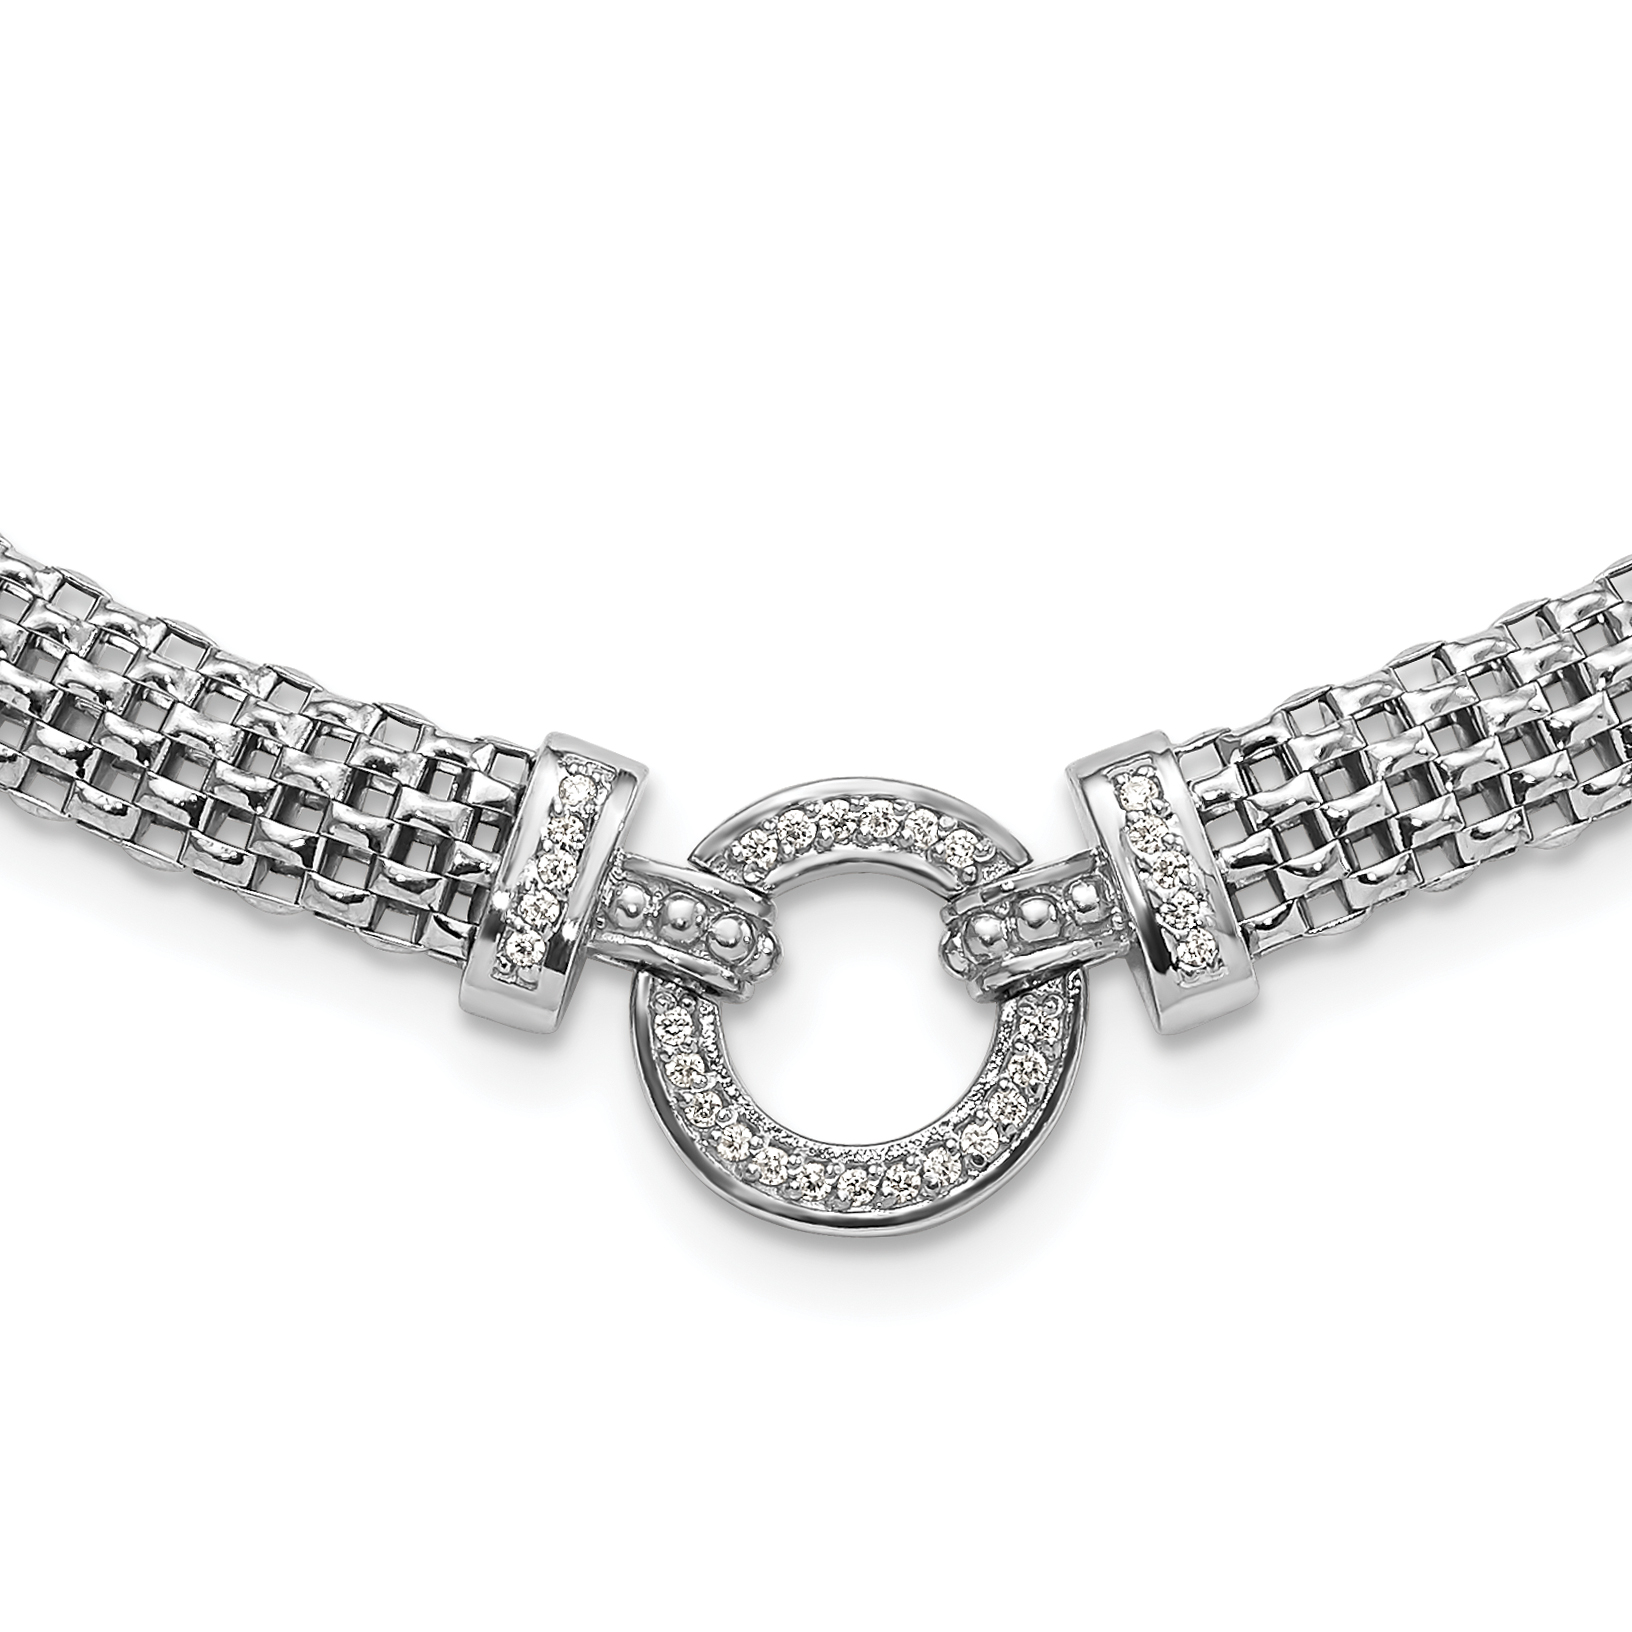 925 Sterling Silver Cubic Zirconia Cz Chain Slide Pendant Charm Necklace Fine Jewelry Gifts For Women For Her